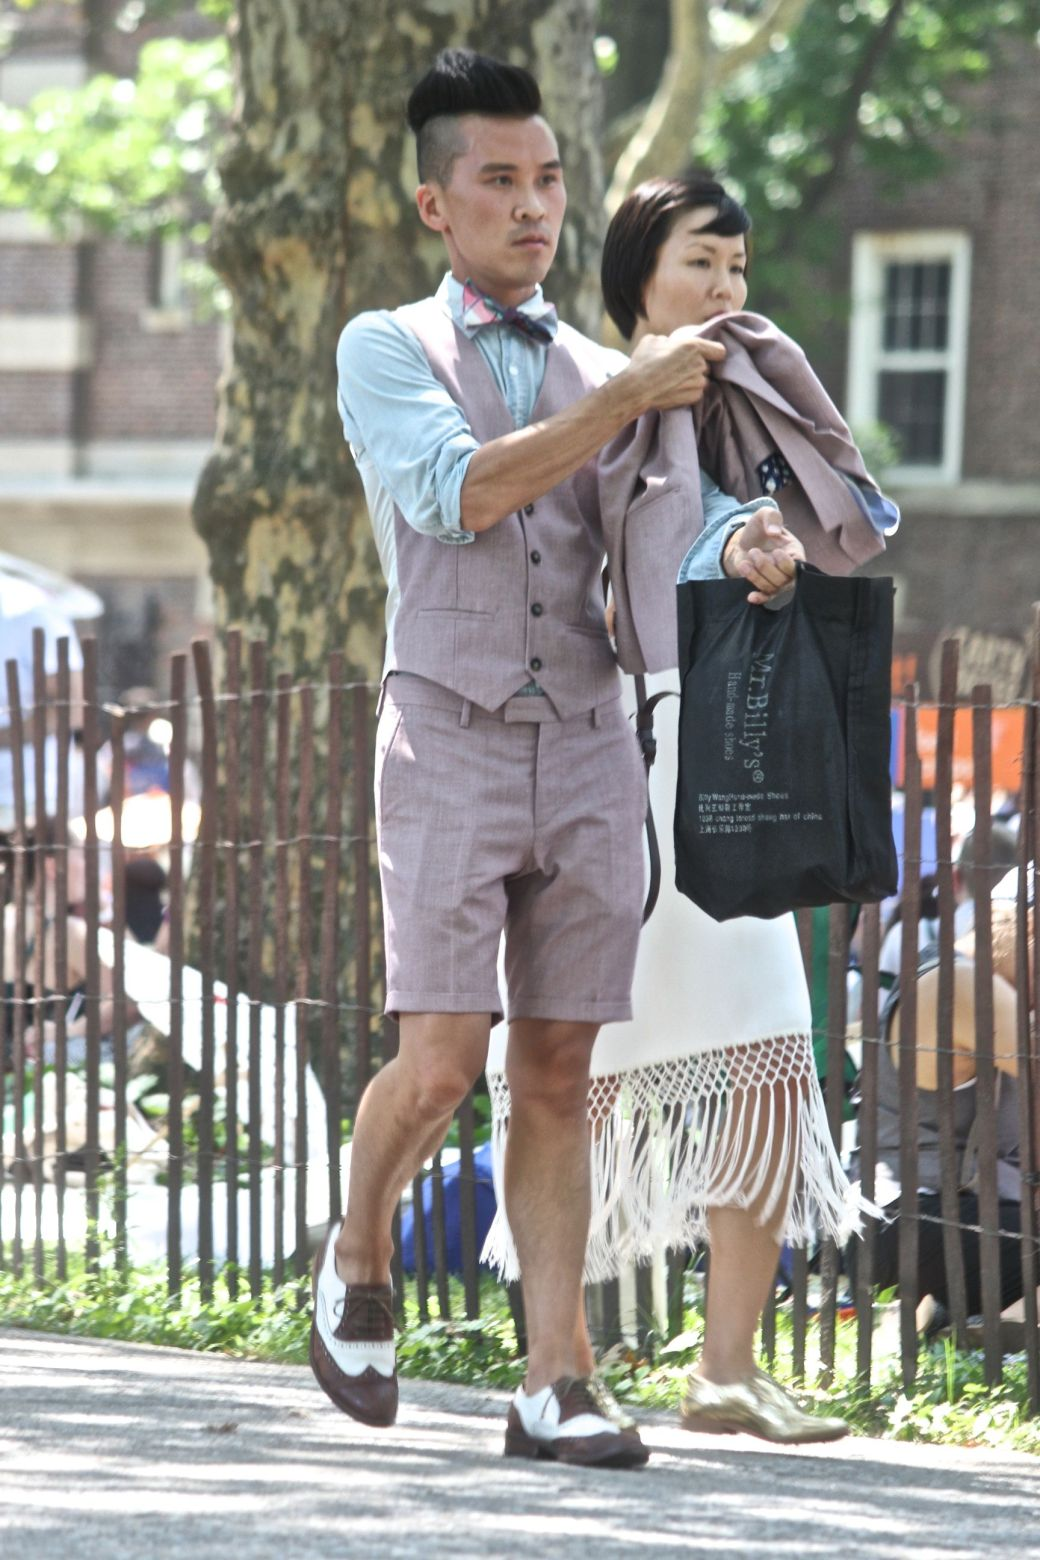 new york city governor's island jazz age lawn party august 16 party people 29